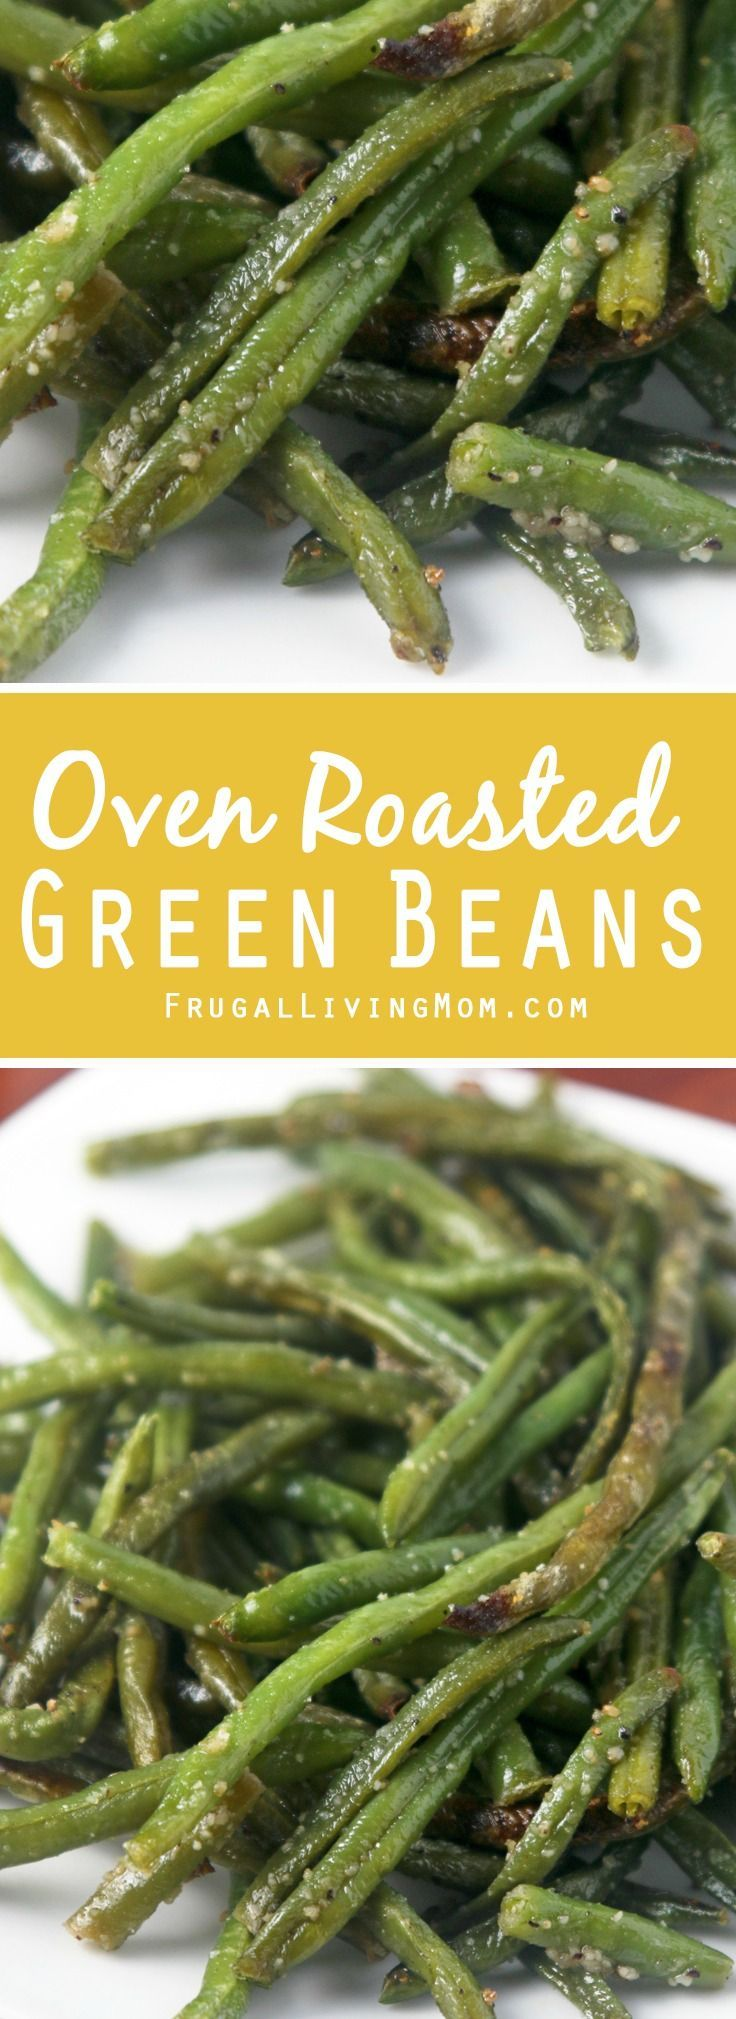 I am not a vegetable lover. That said, I do like to eat healthy and I know eating lots of veggies is a part of that.  When I discovered roasting them I was amazed at how it changed the taste from simply being steamed or sauteed.  Roasting Green Beans imparts a yummy slightly sweet and smokey taste that makes them pretty amazing.